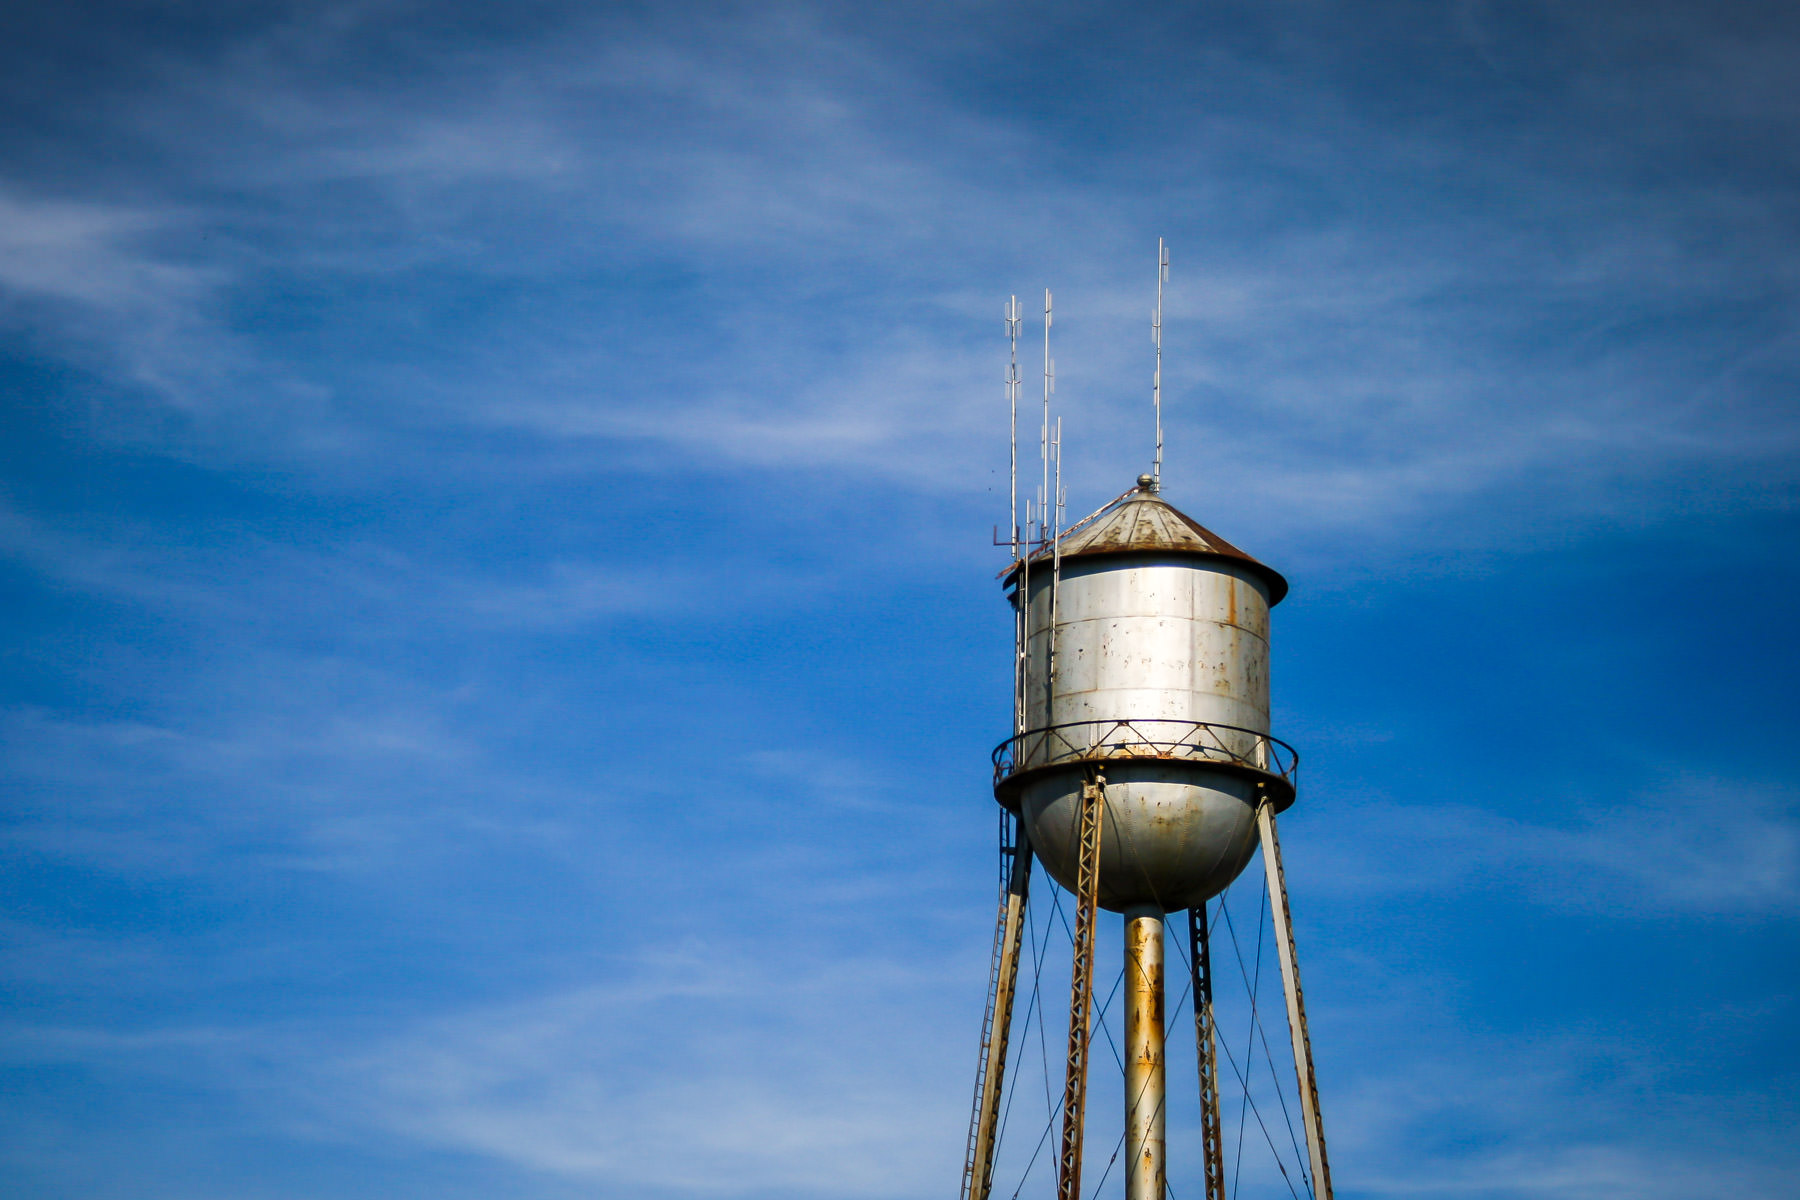 A water tower rises into the blue sky of Overton, Texas.